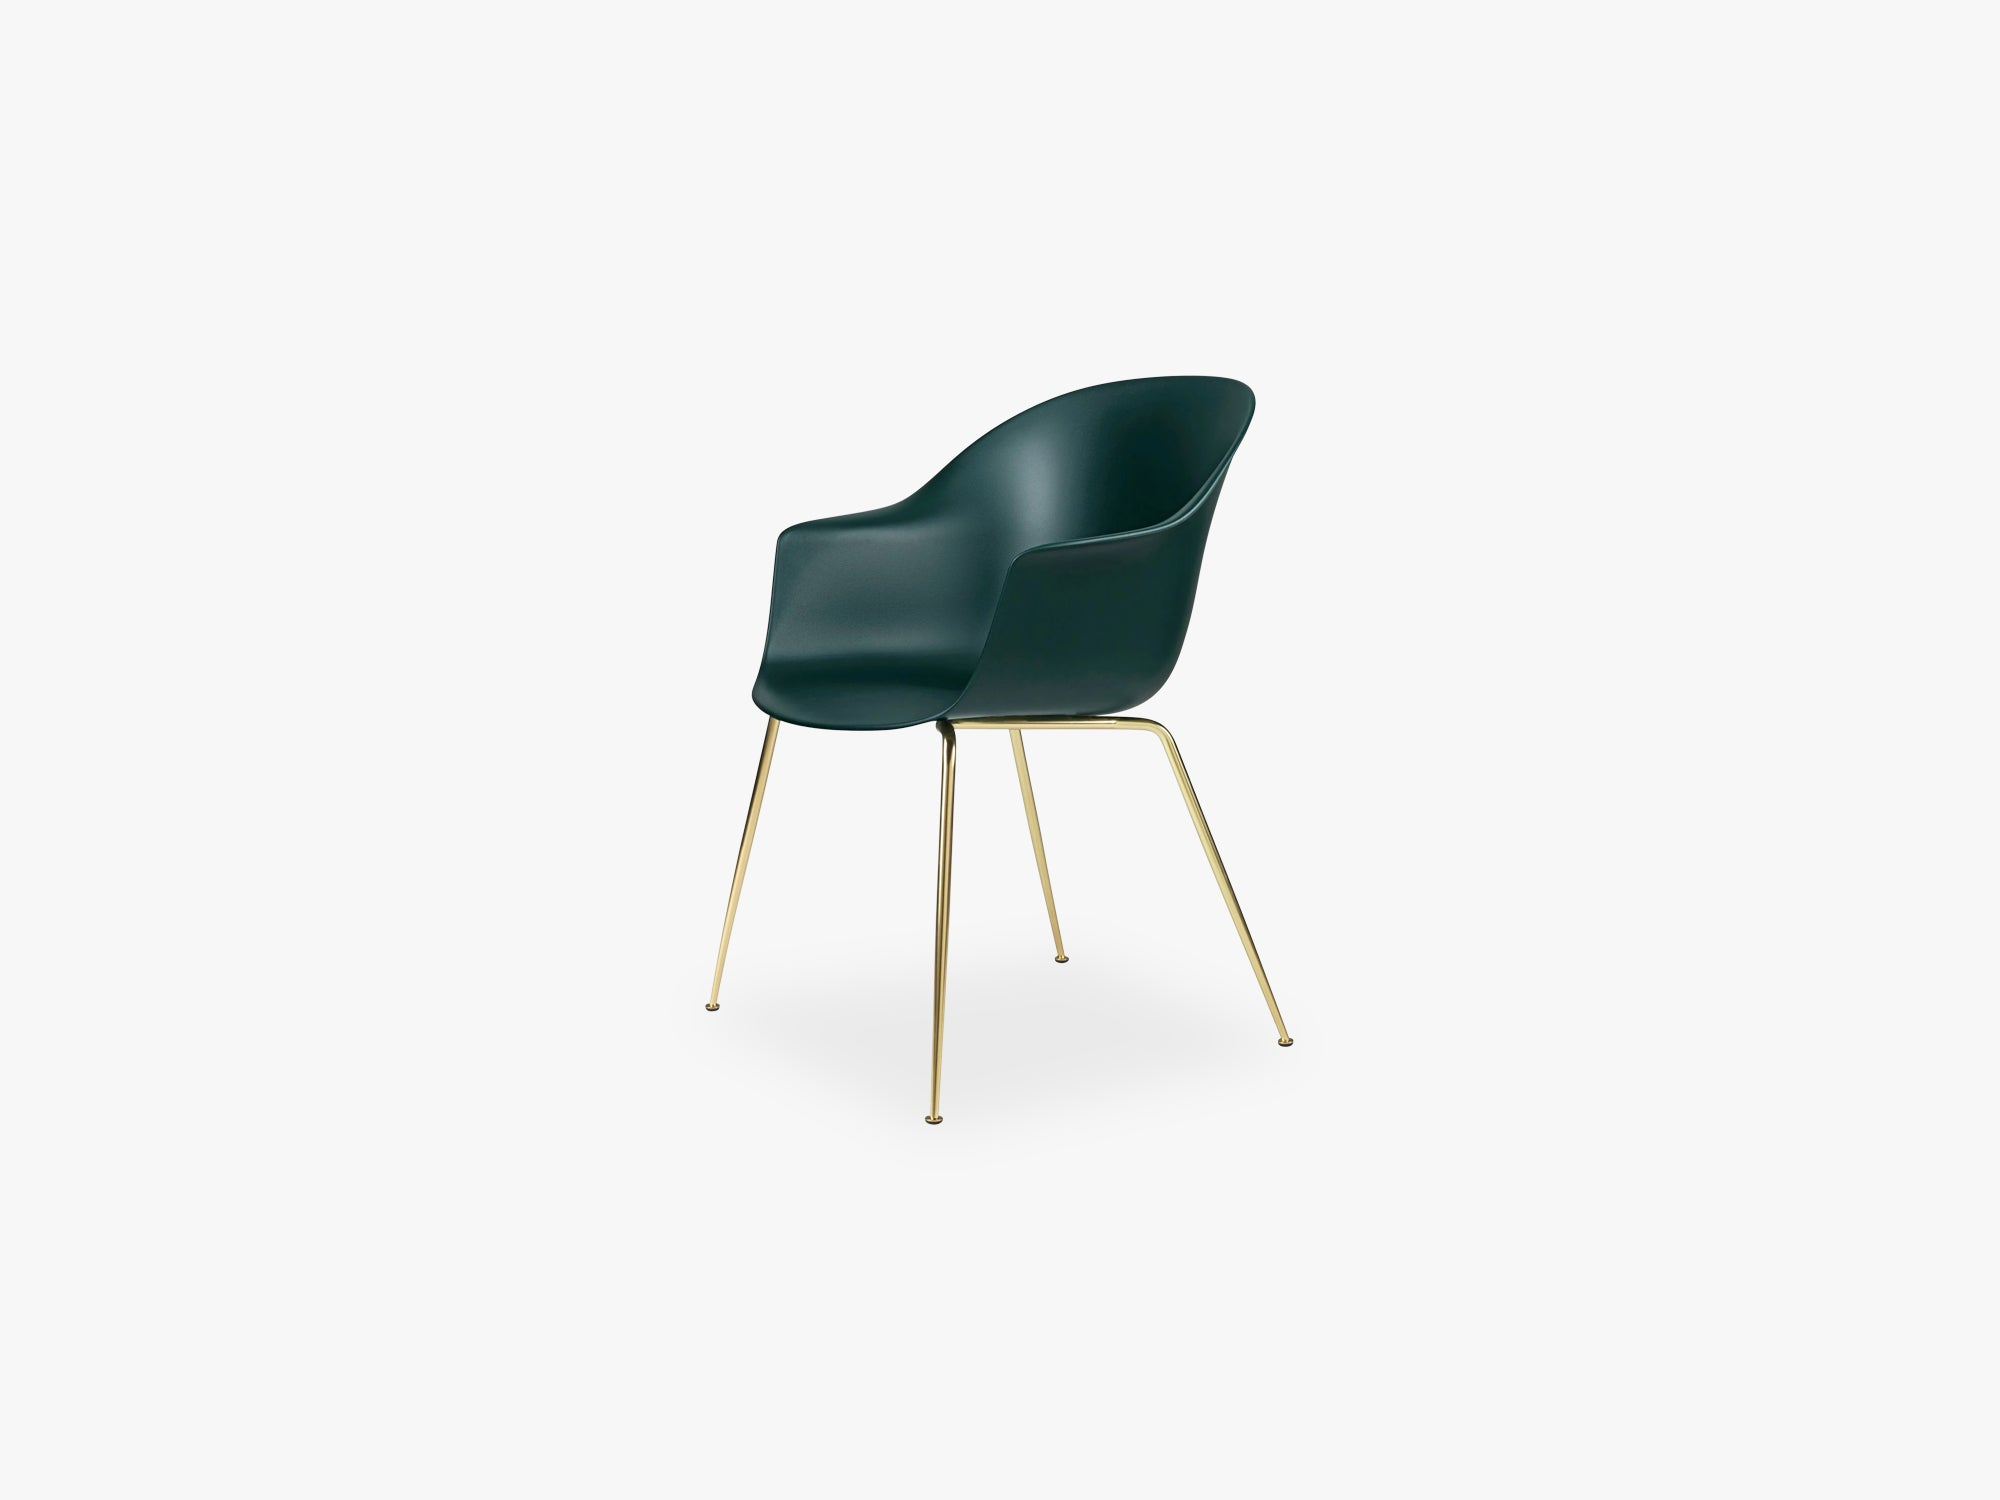 Bat Dining Chair - Skal m Conic base - Brass Semi Matt, Dark Green fra GUBI